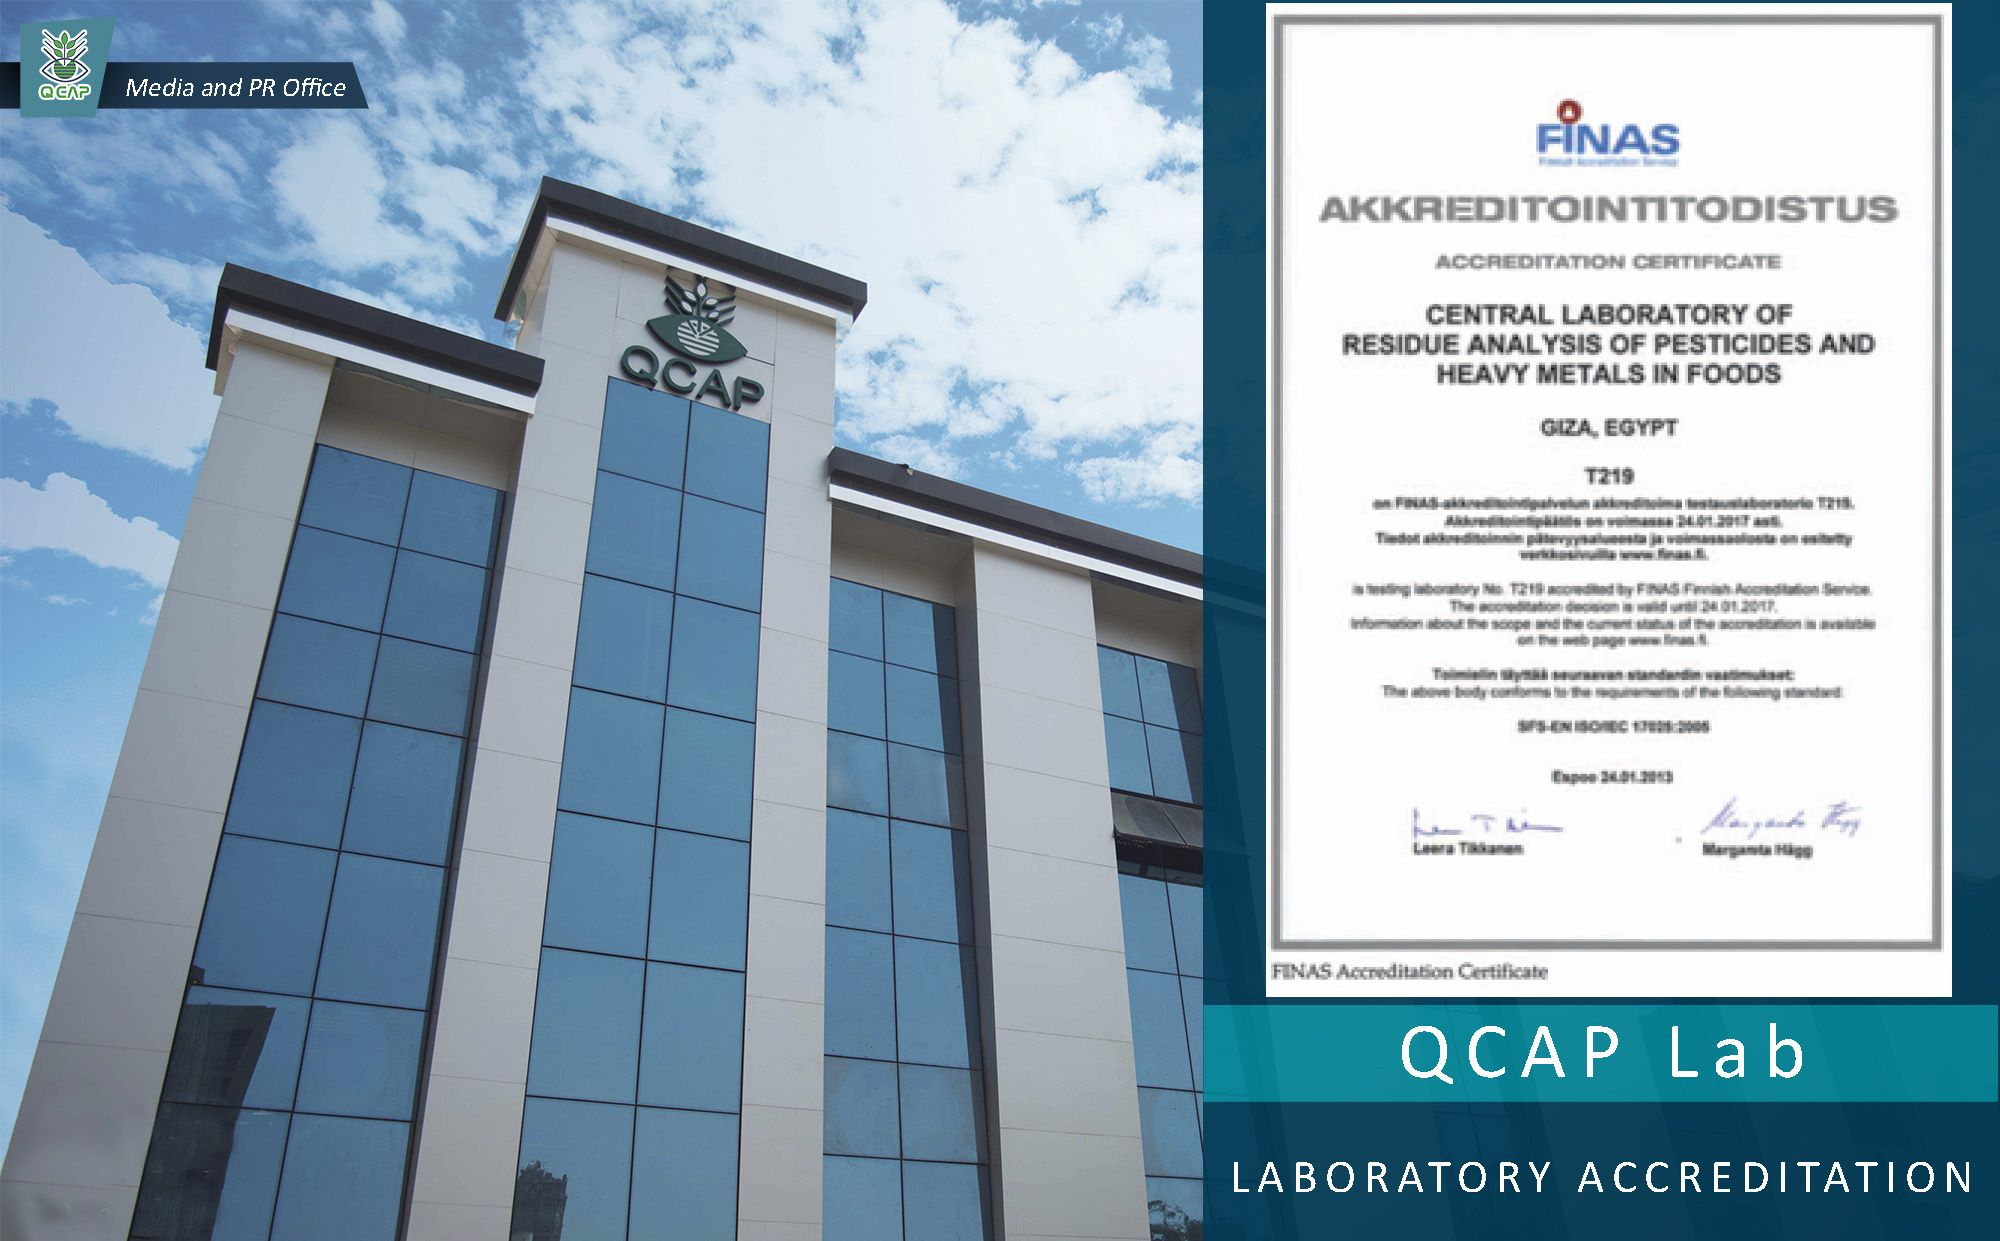 Qcap Is The Only Laboratory Approved For Analysis Of Food Safety In Egypt It Has Been Awarded The International Accreditation Ce Giza Egypt Accreditation Giza